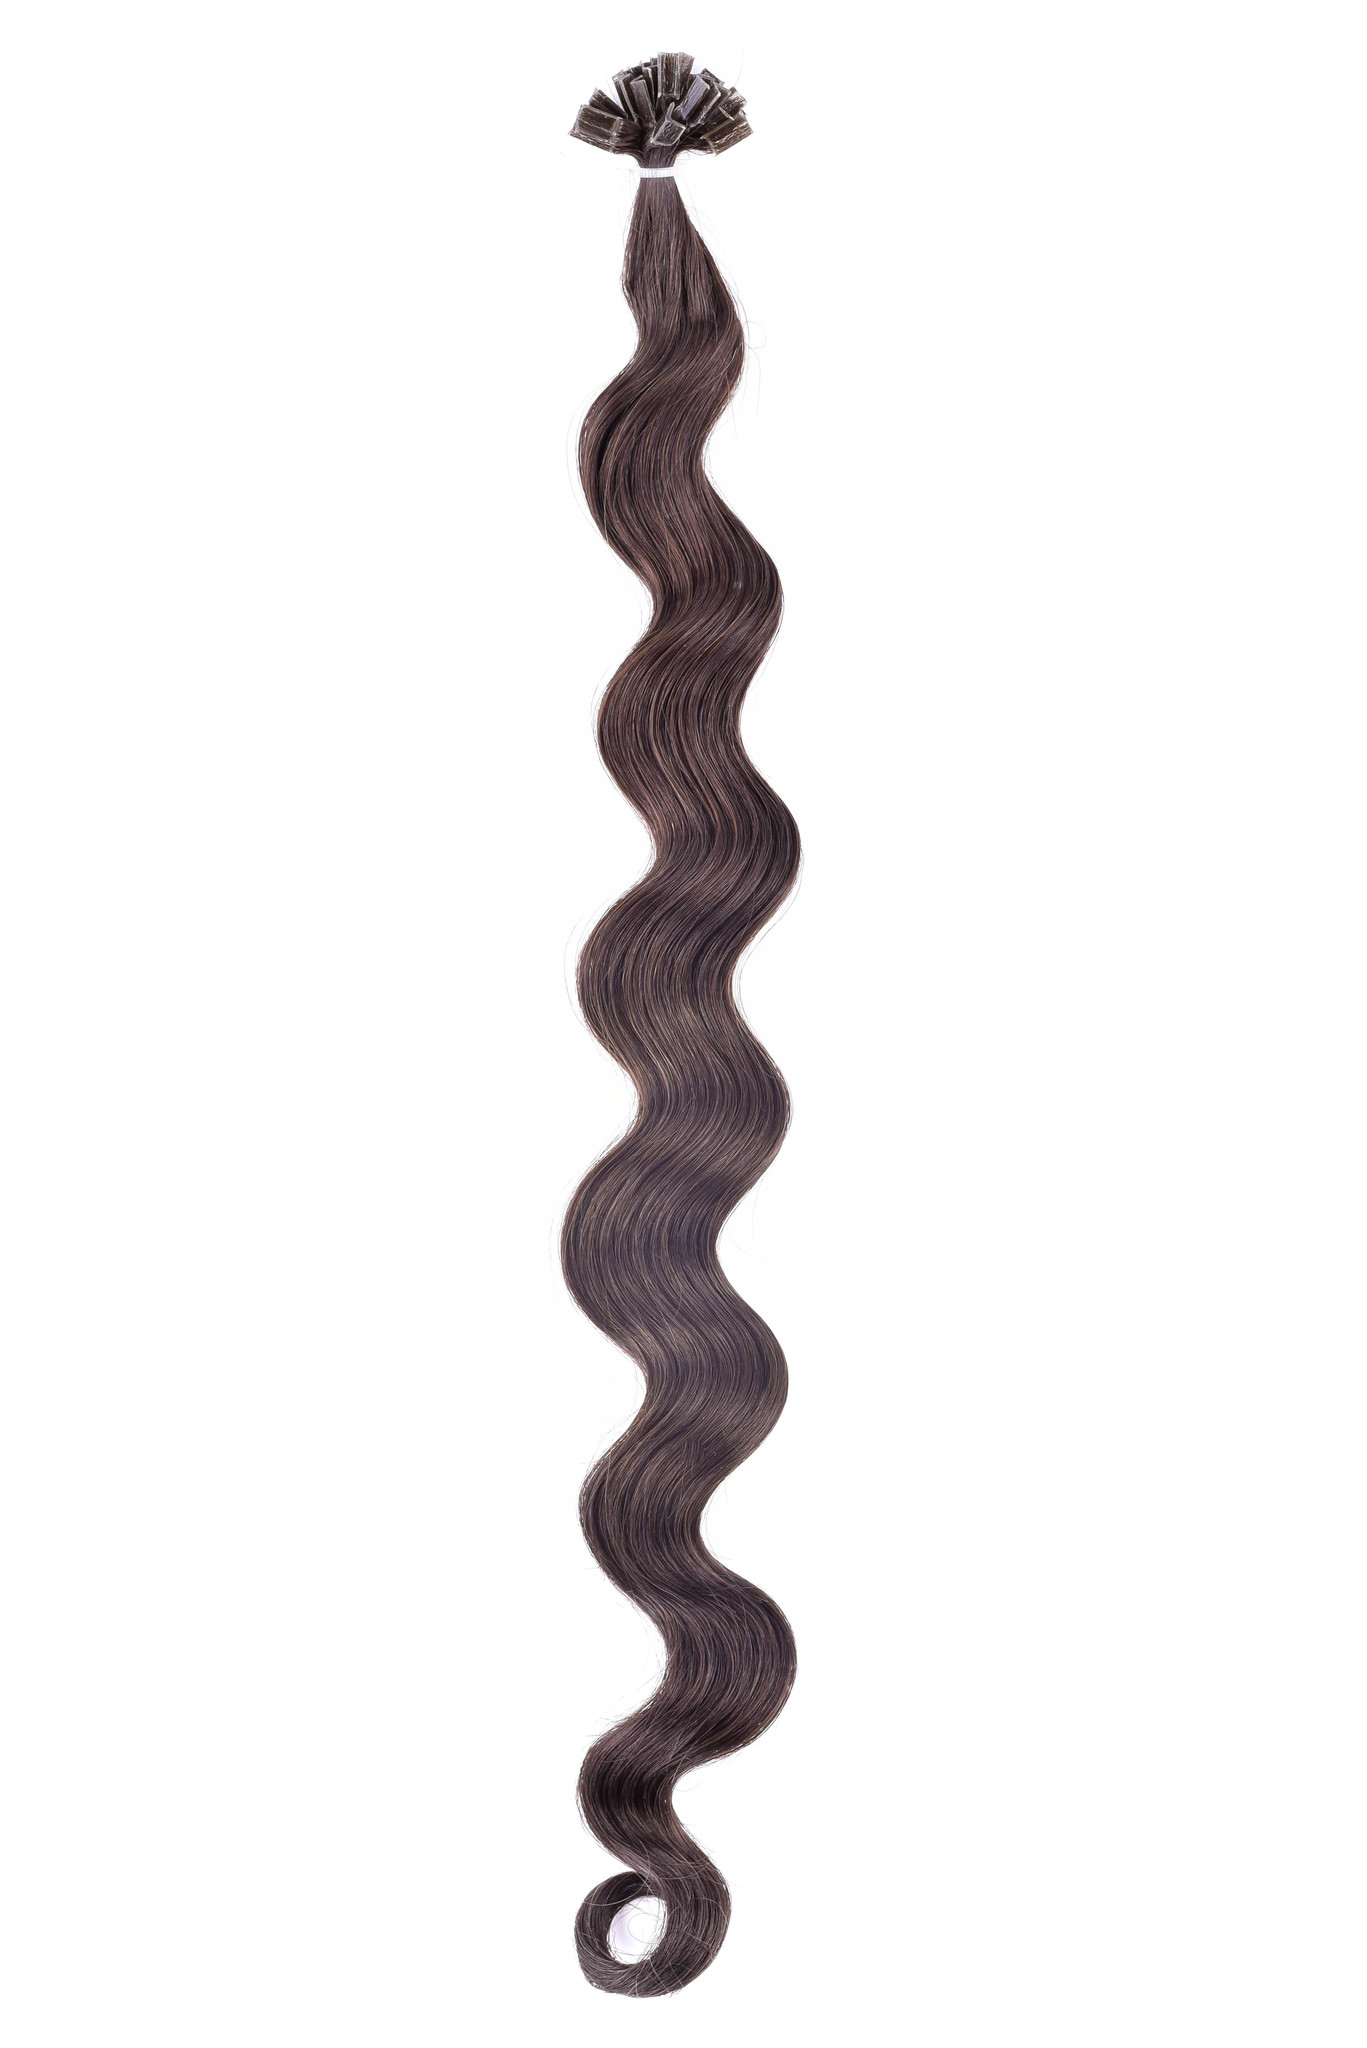 SilverFox Wax Extensions Loose Wave 55cm #14 Warm Ash Blonde